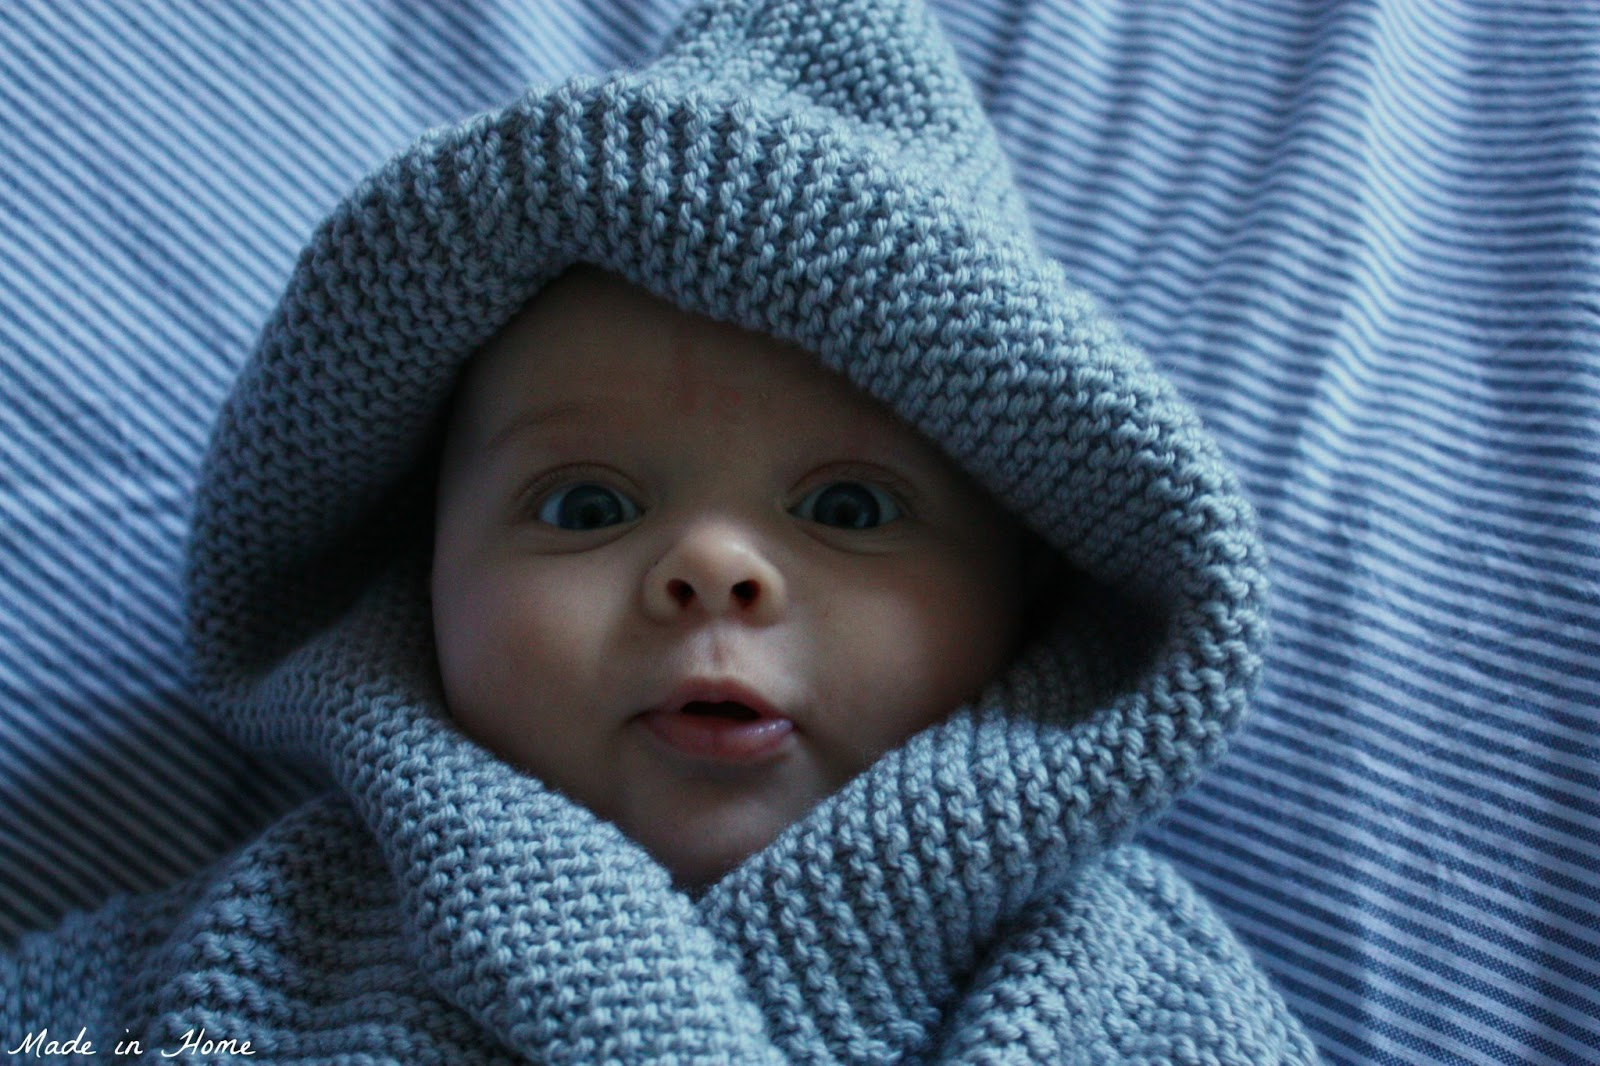 Made in Home: Blue-eyed boy {knitting}